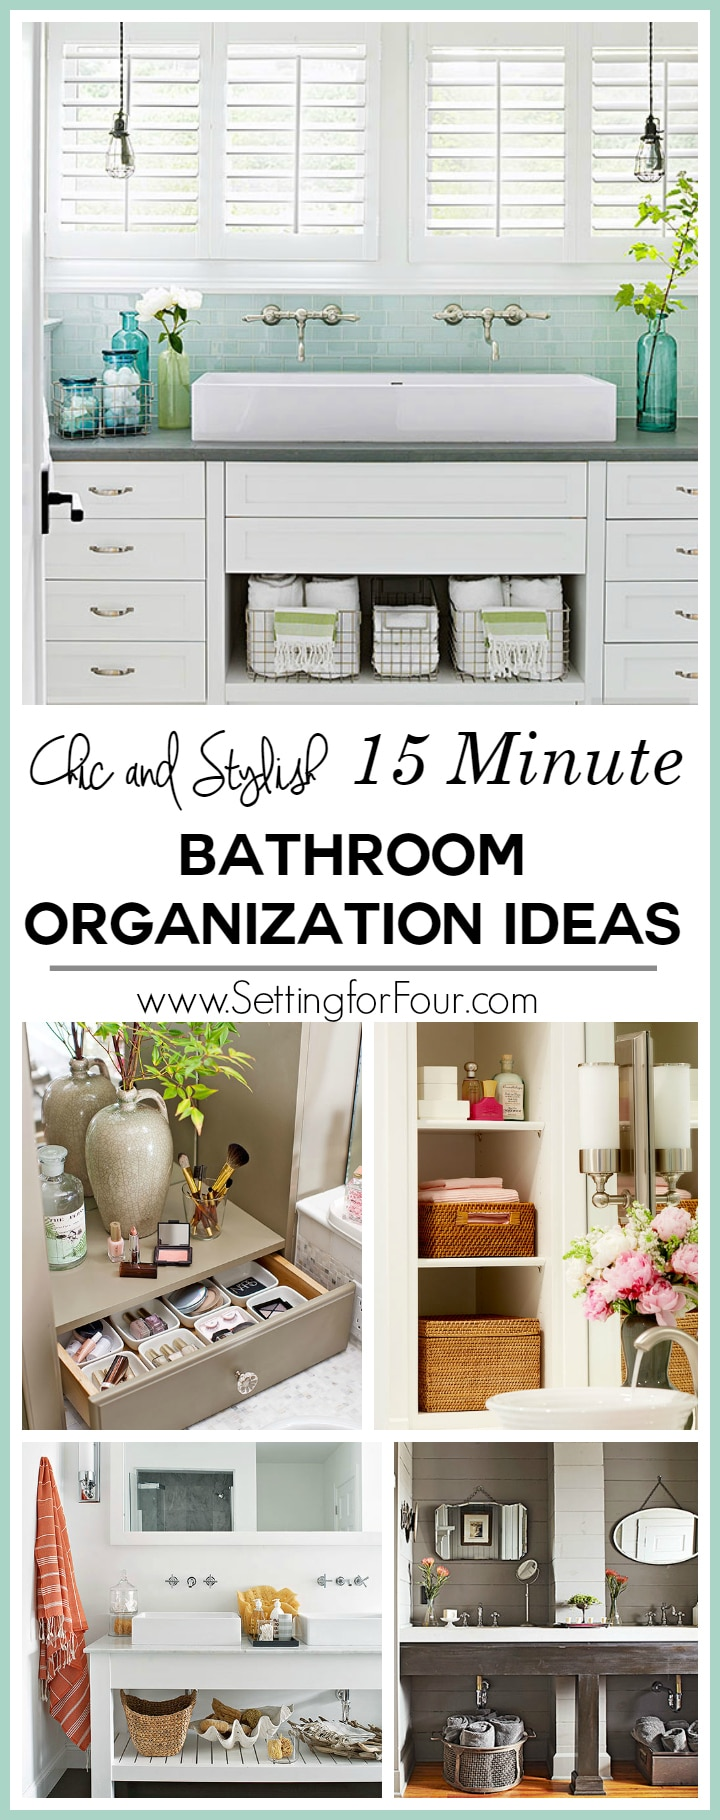 15 minute bathroom organization tips setting for four Organizing ideas for small bathrooms